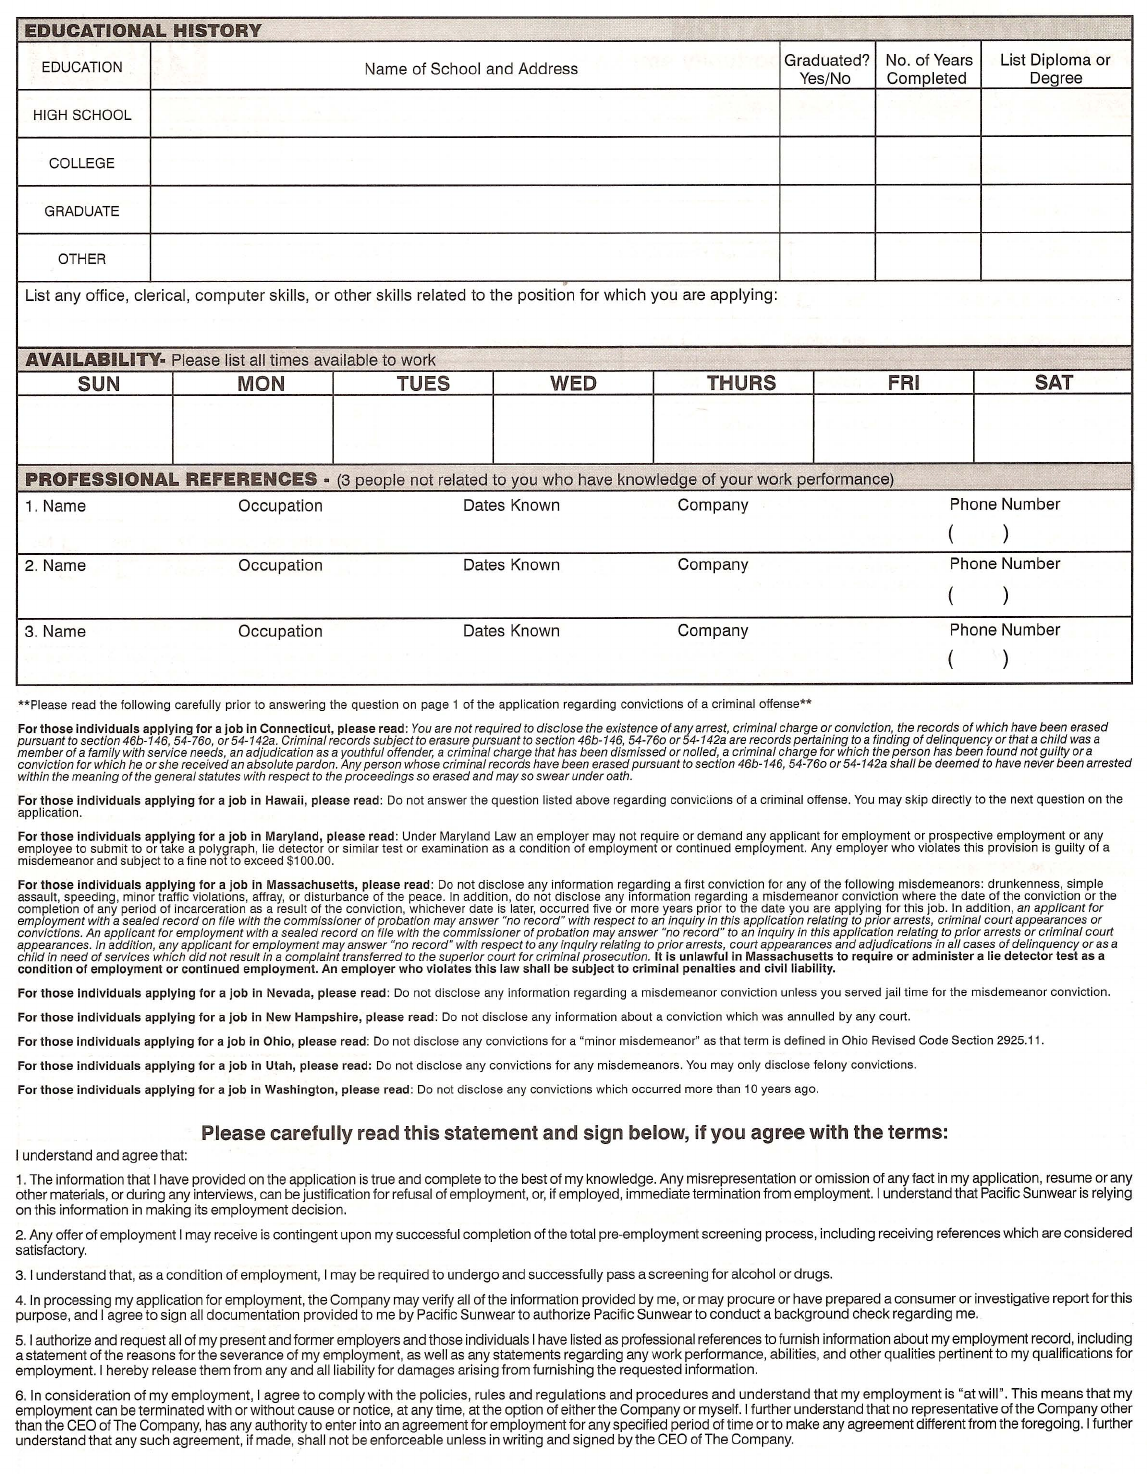 pacsun job application pdf Free Printable PacSun Job Application Form Page 2